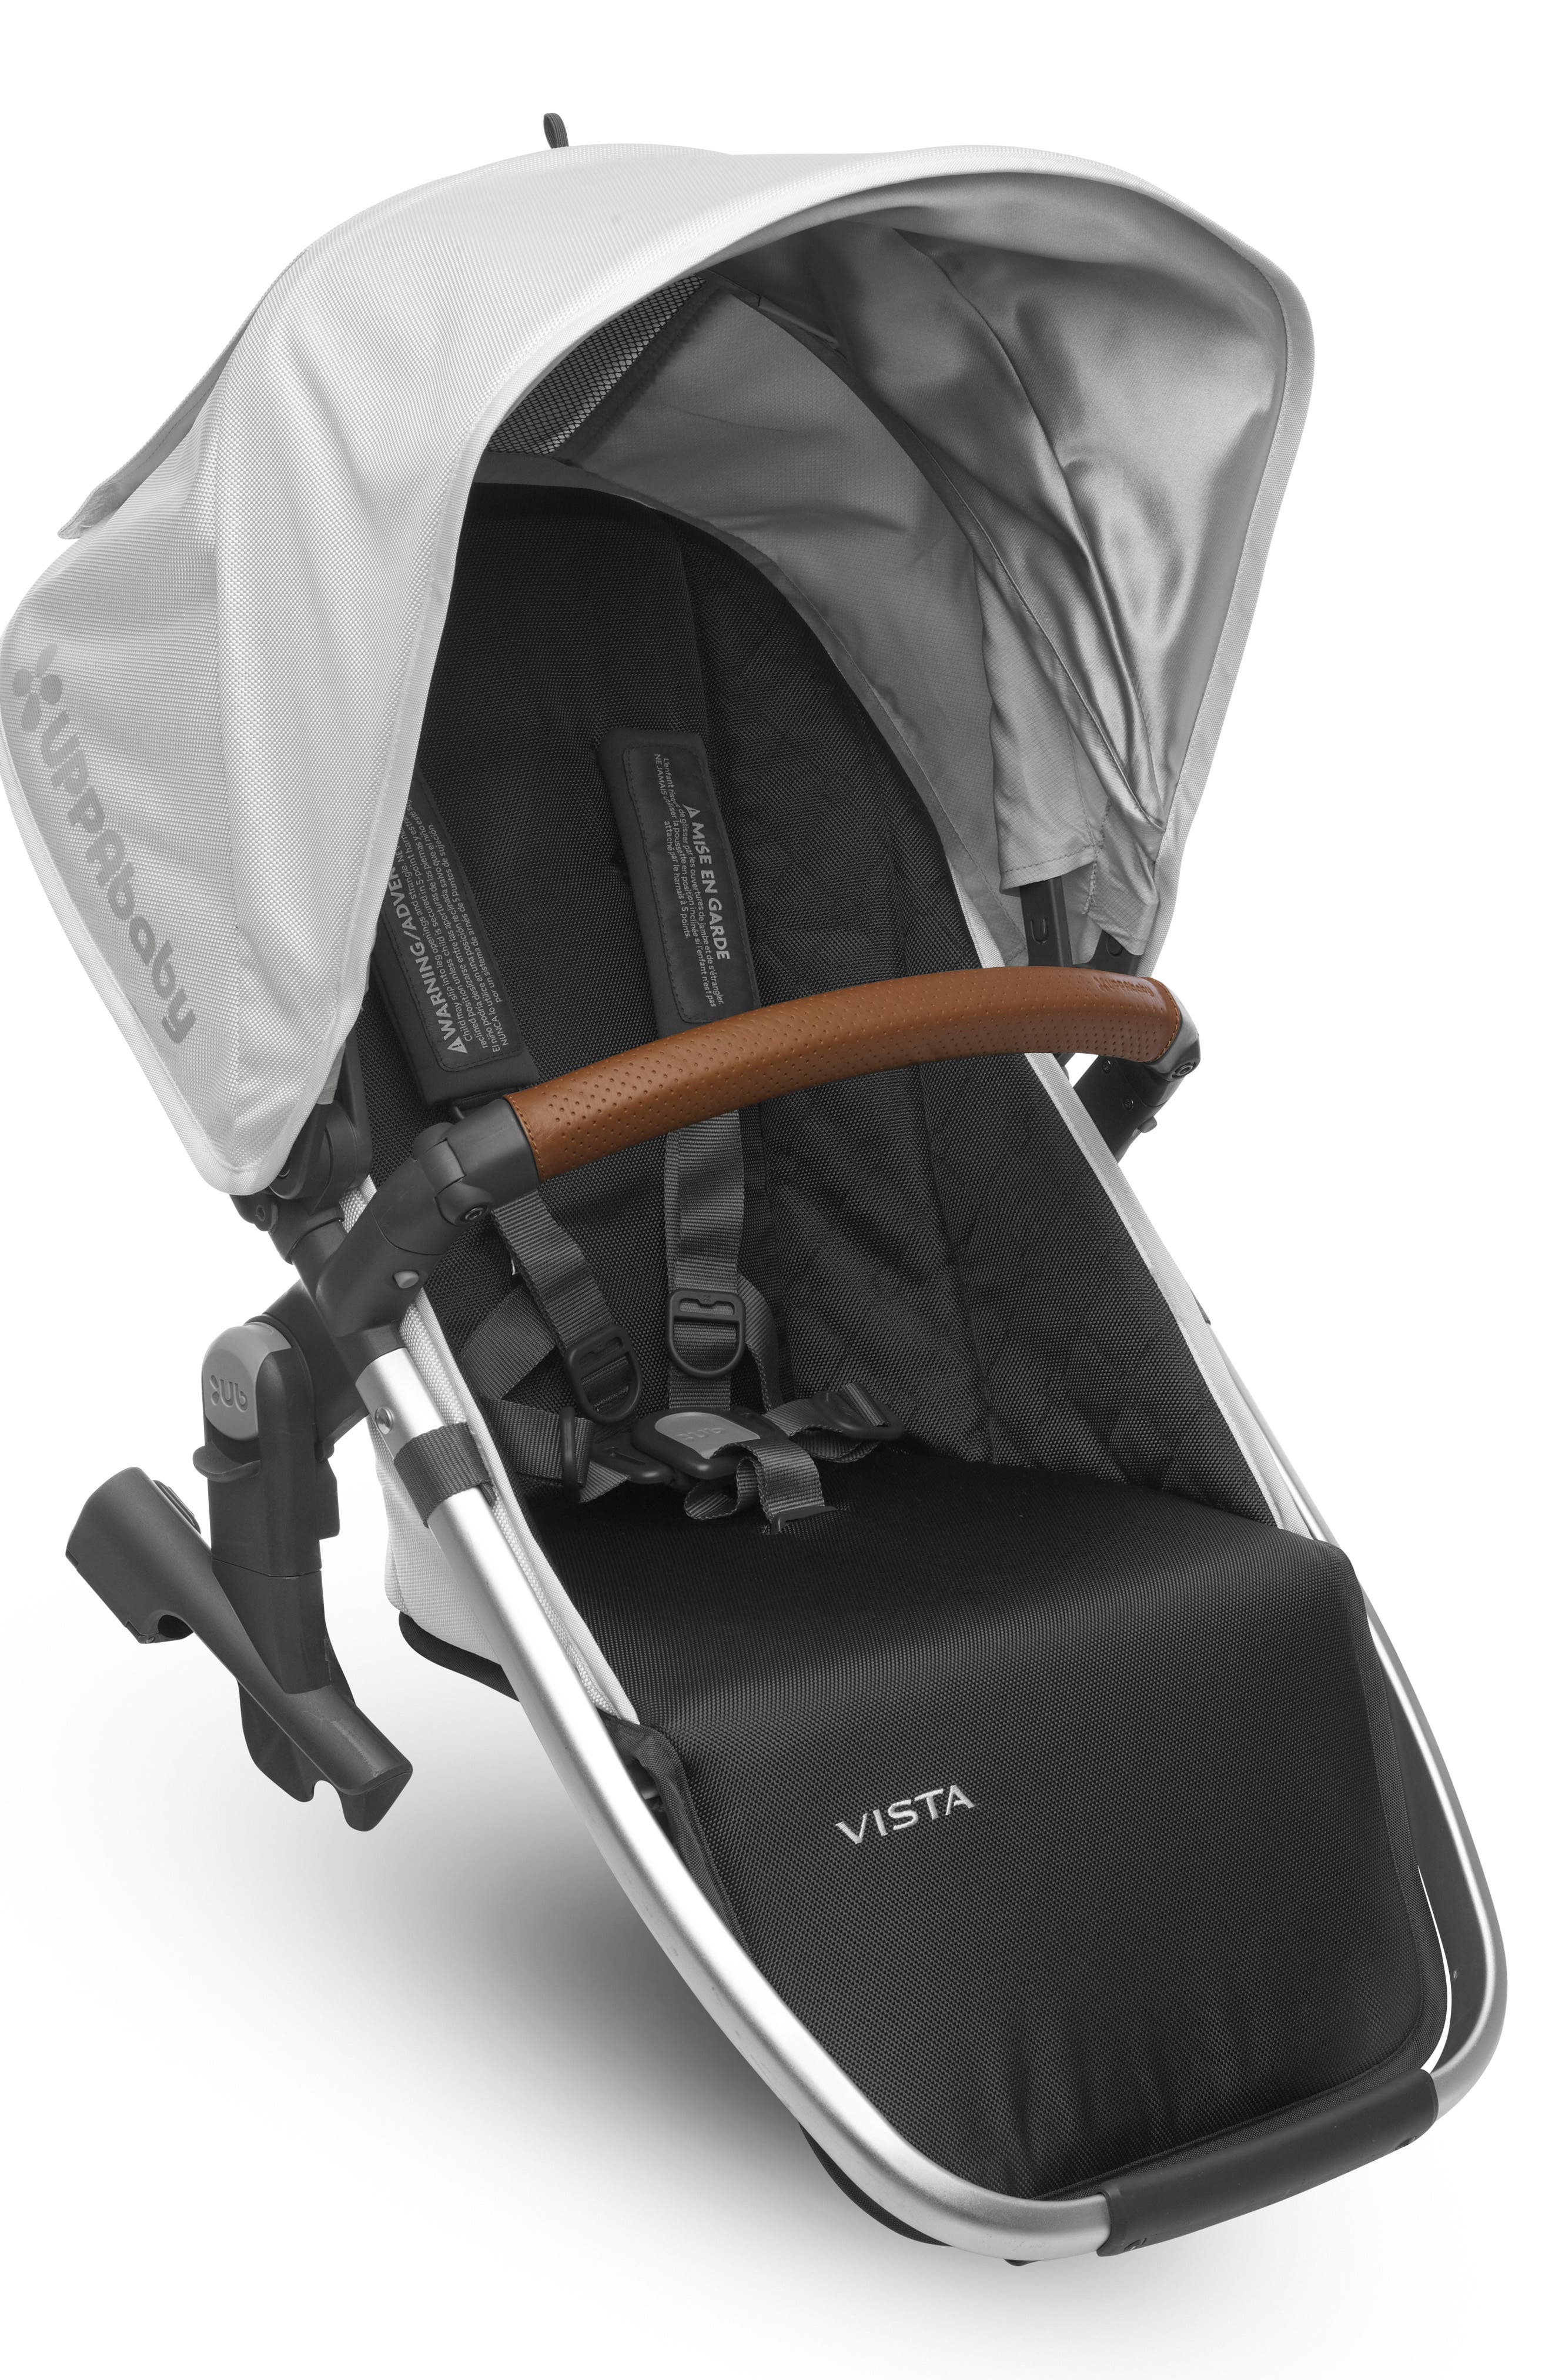 UPPAbaby VISTA Stroller Rumble Seat